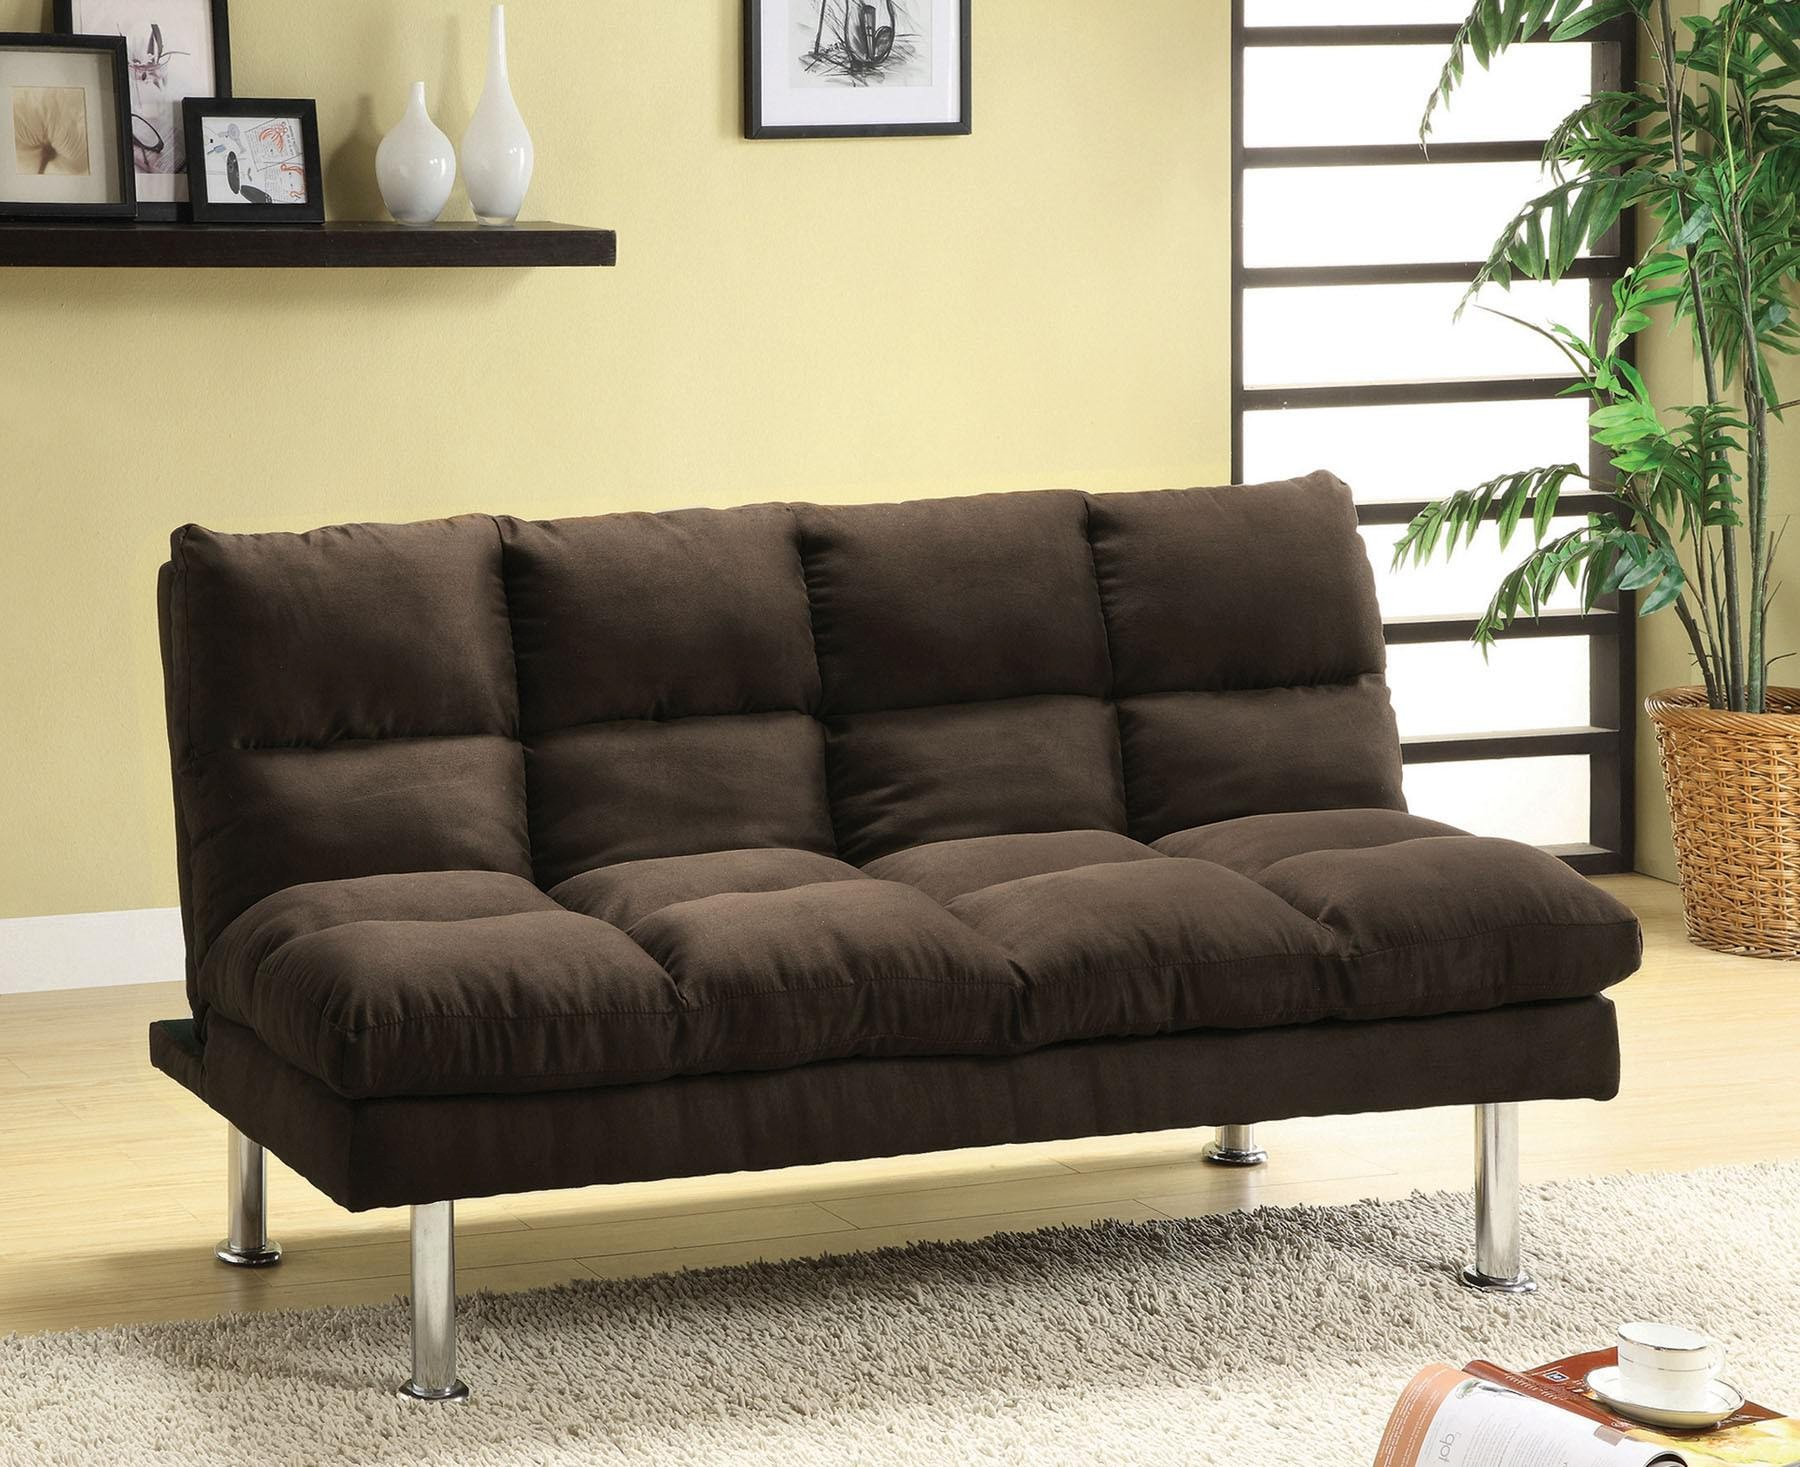 Microfiber sofa Bed Awesome Espresso Microfiber sofa Bed Image